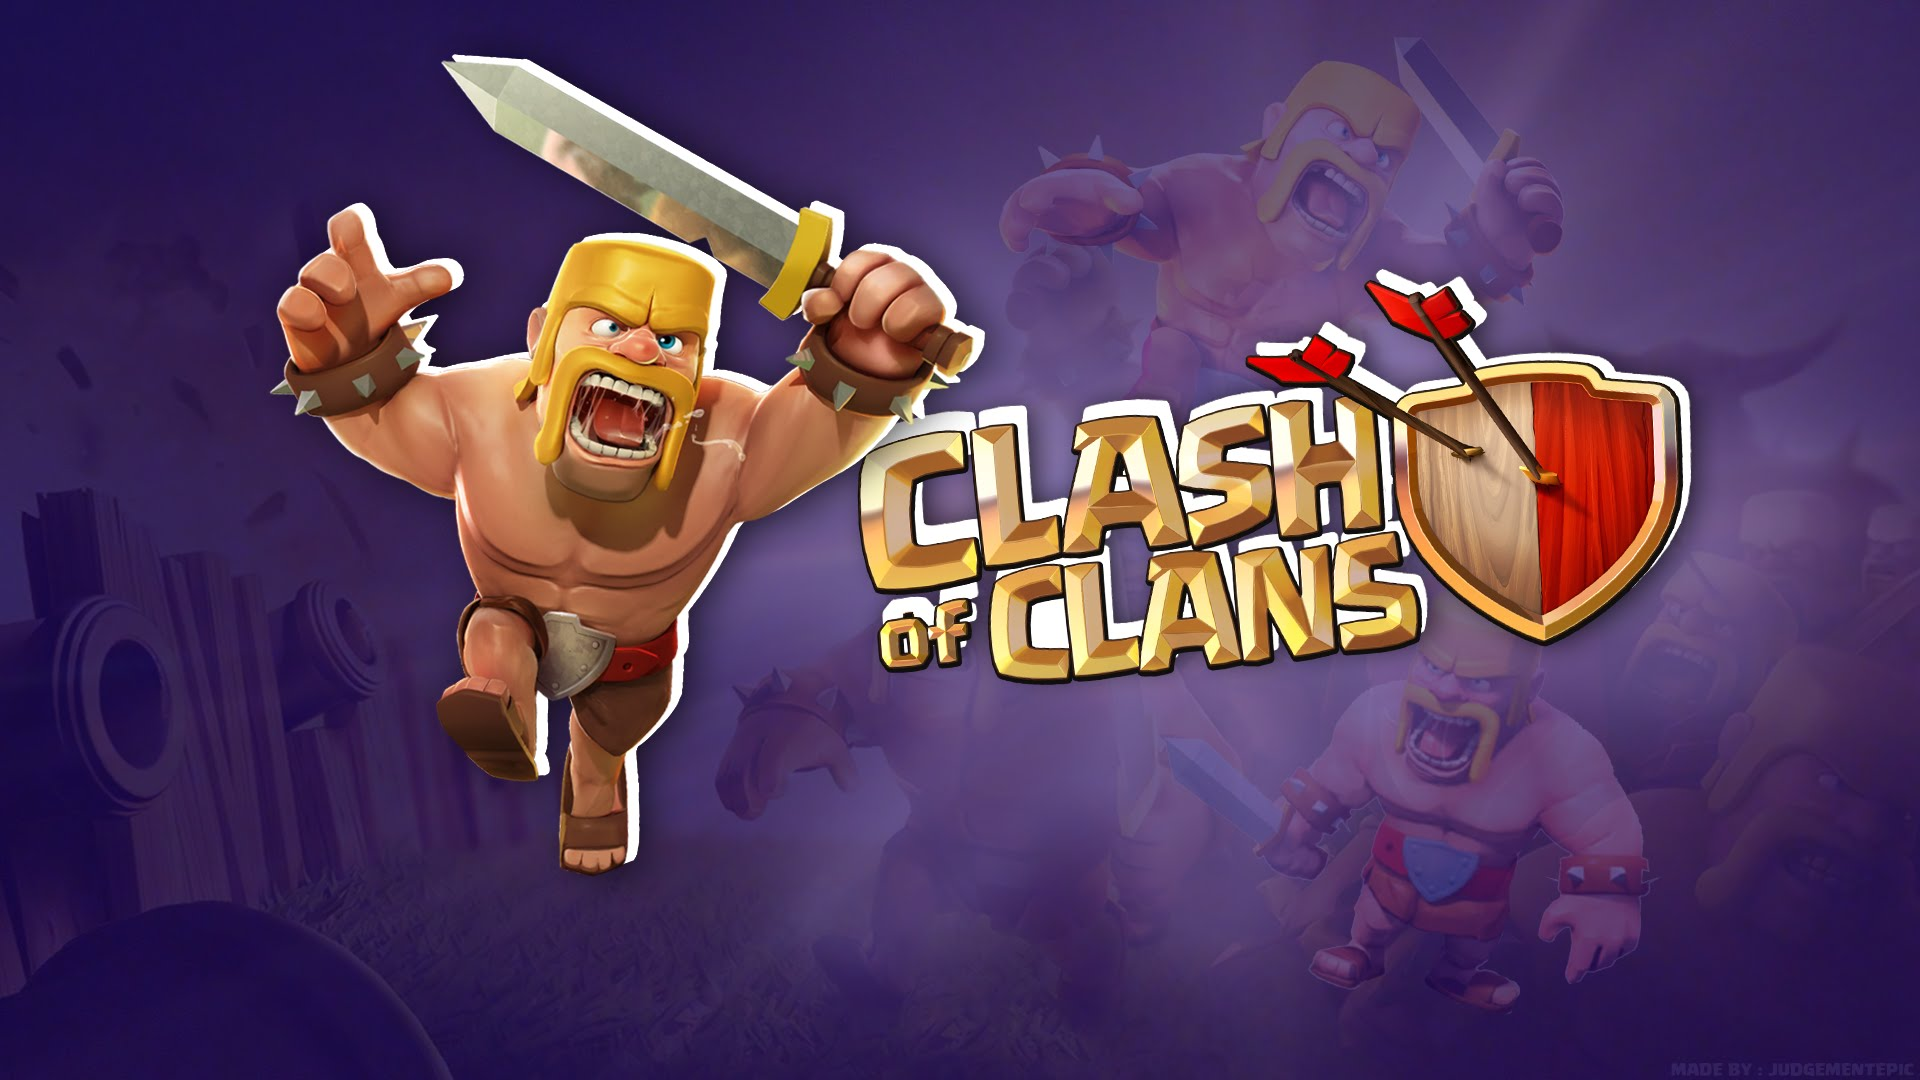 Clash Of Clans Hd Wallpaper Background Image 1920x1080 Id